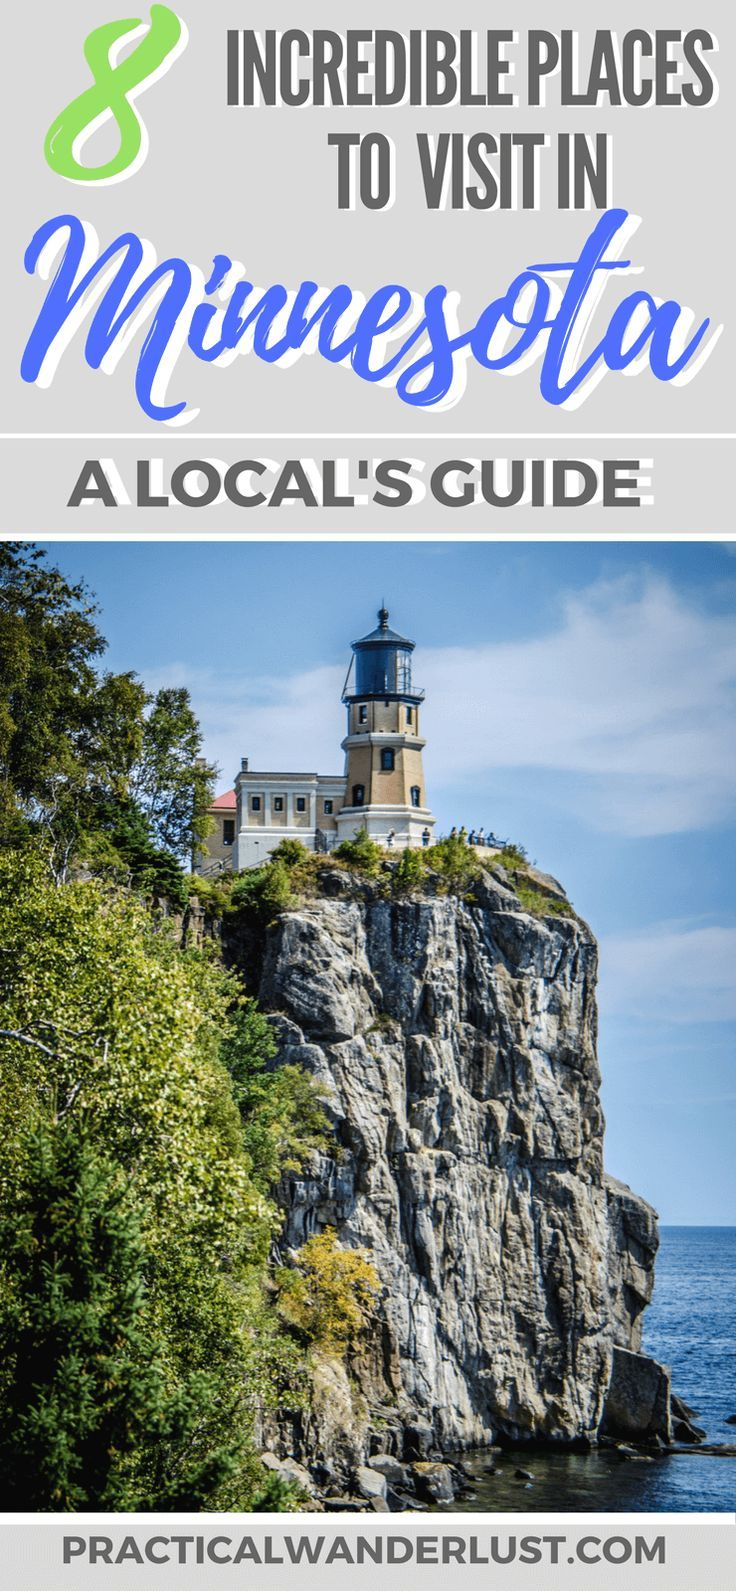 8 Incredible Places to Visit in Minnesota: A Local's Guide